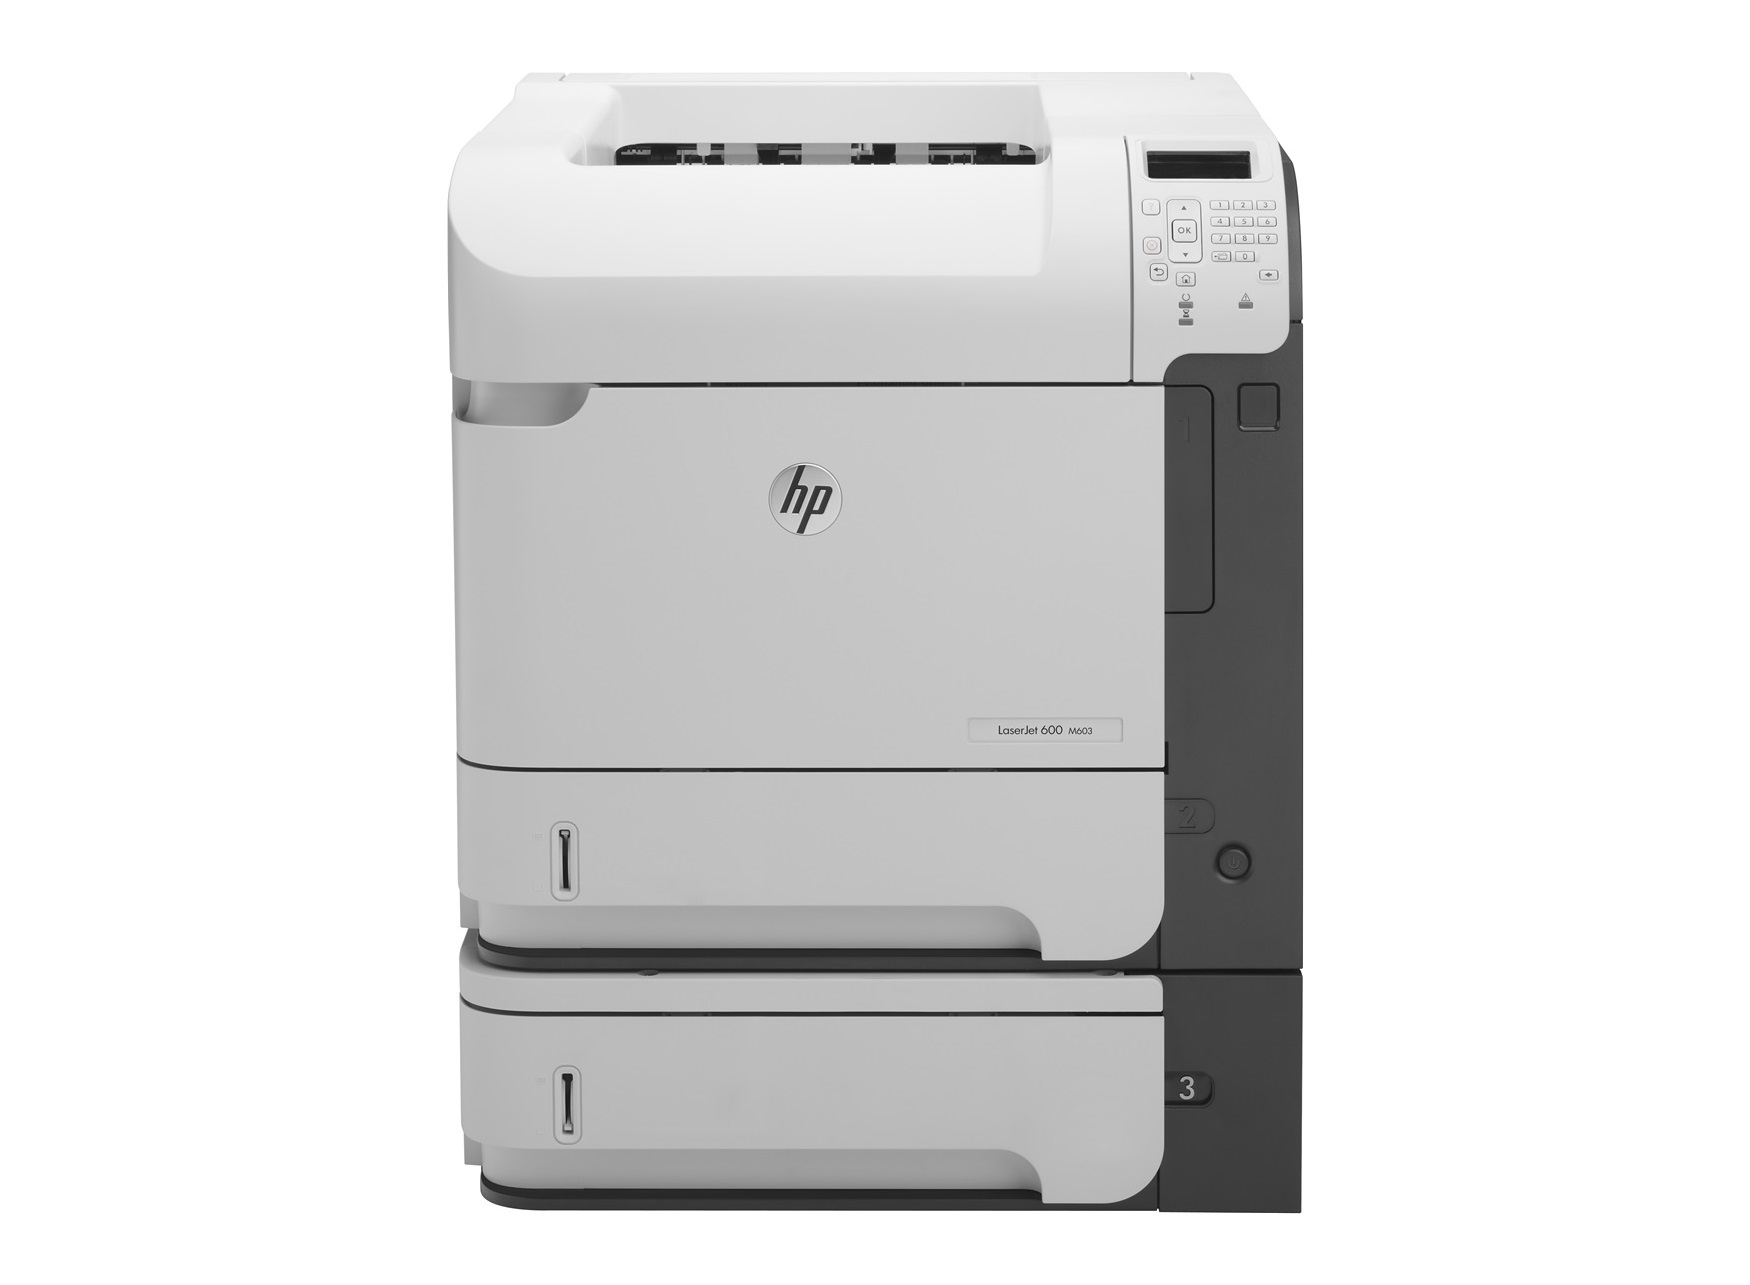 M603XH HP LaserJet Enterprise 600 M603xh - Refurbished with 6 months RTB warranty and working consumables.